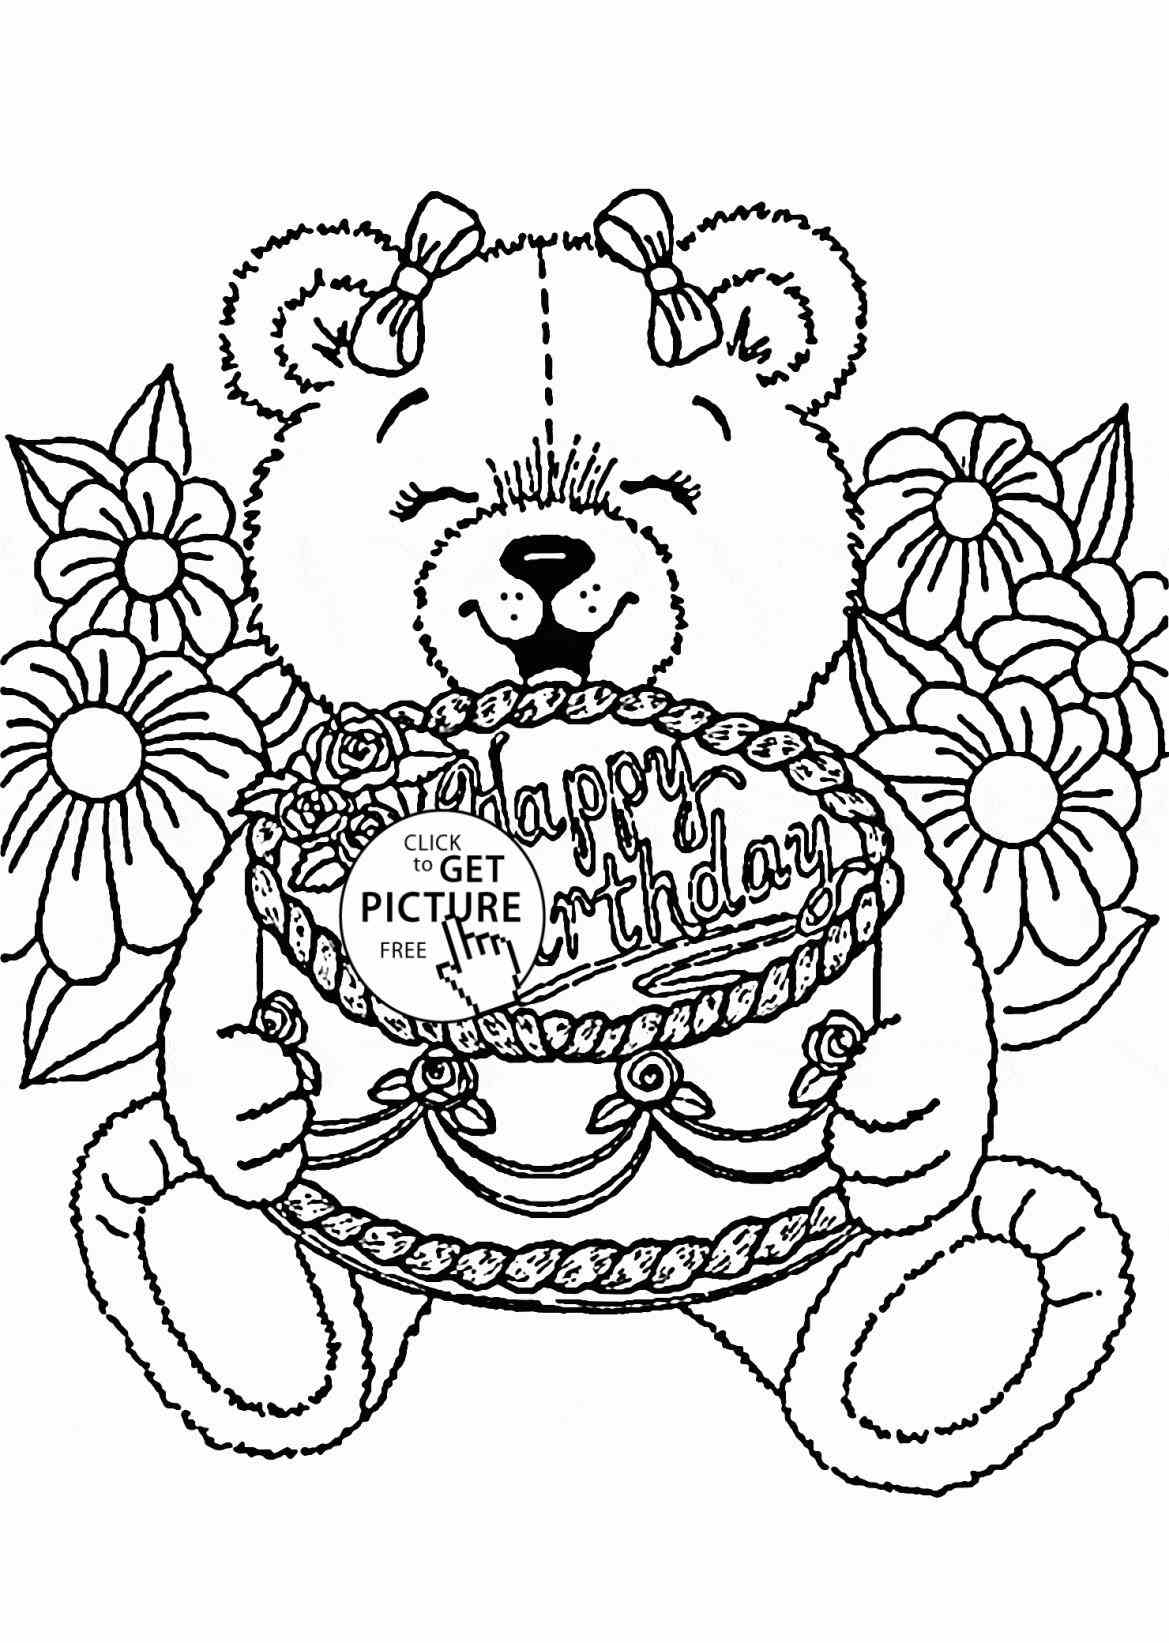 1169x1643 Shopkins Coloring Pages Cheeky Chocolate Web Coloring Pages